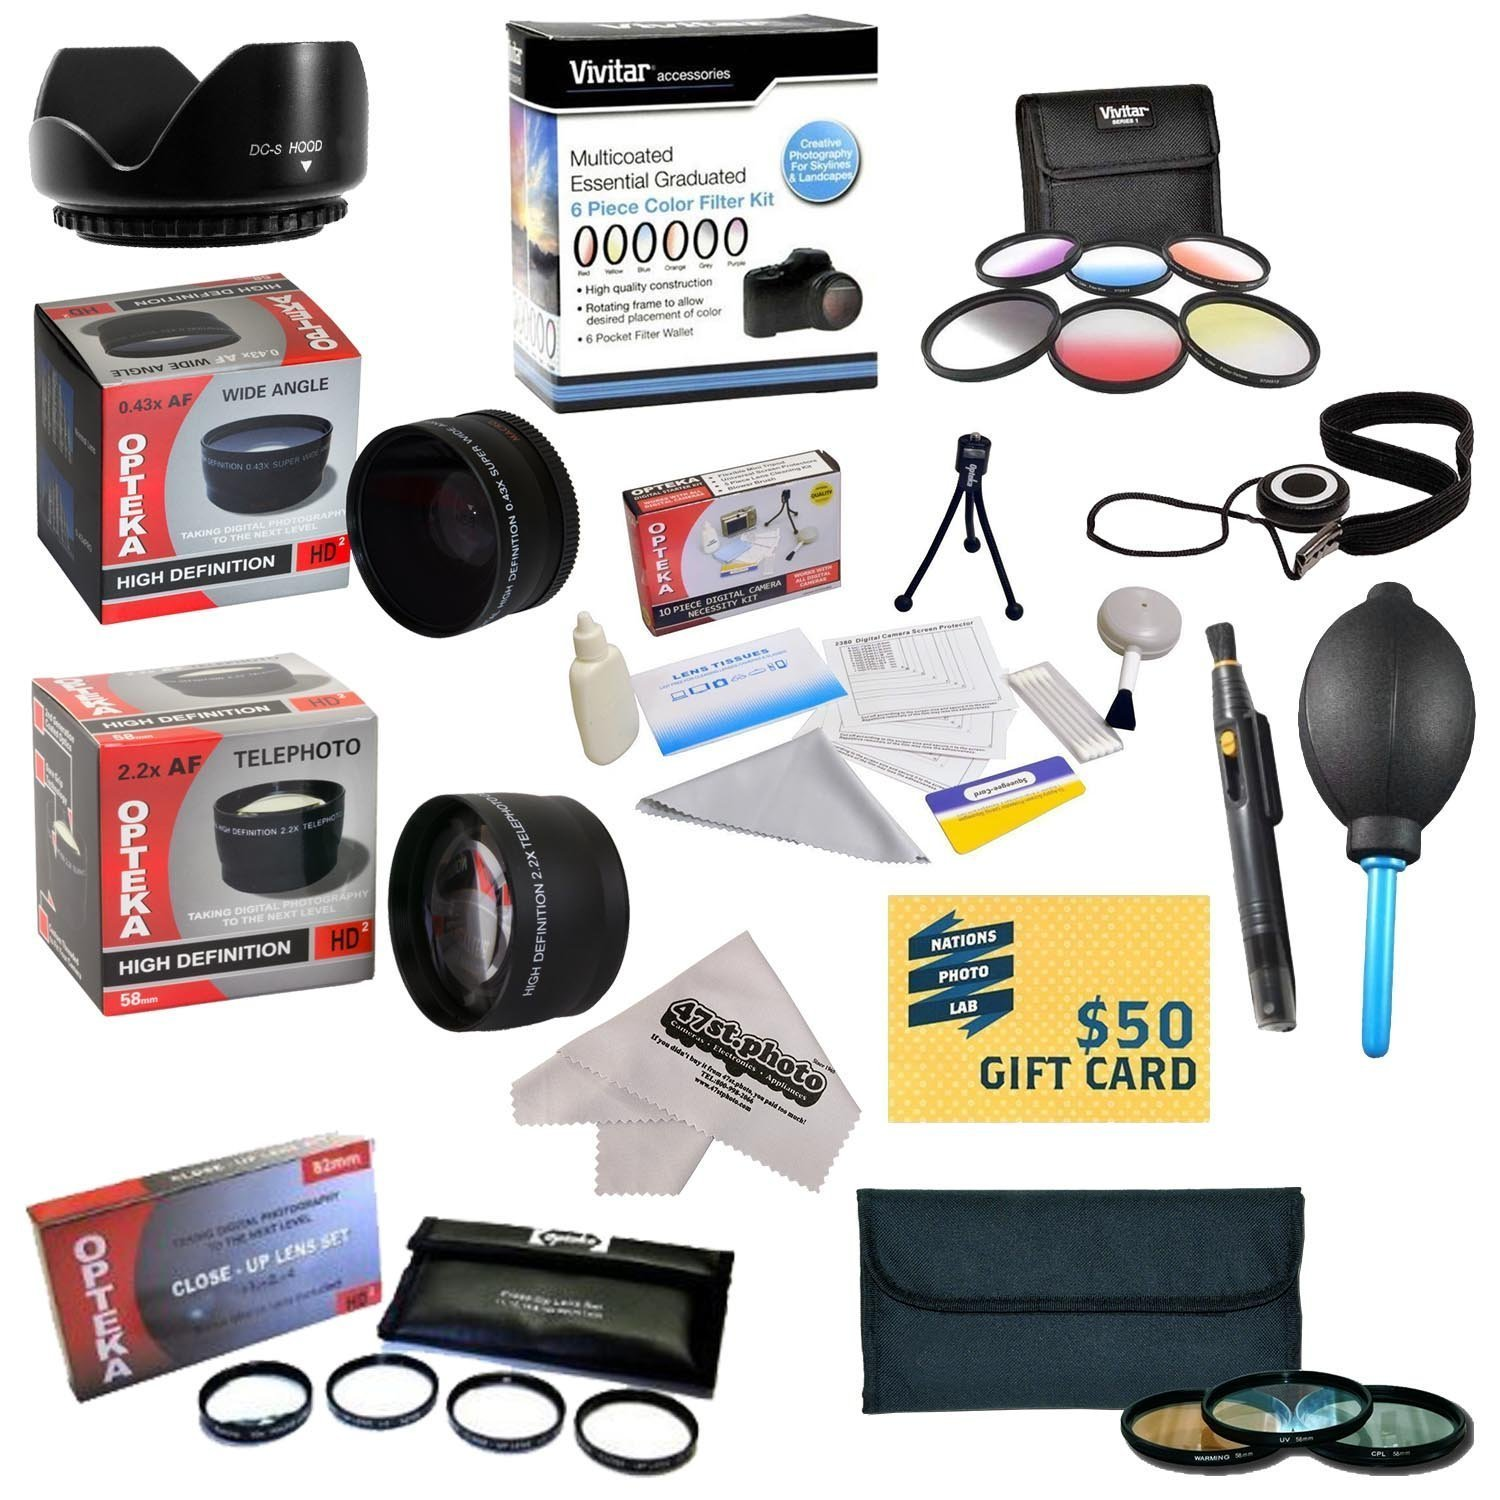 25 Piece Advanced Lens Package For Olympus E-620, E-610, E-520, E-510, E-500, E-450, E-420, E-410, E-5, E-3, E-330, E-1 & E-30 Cameras & 70-300MM, 40-150MM, 14-42MM, 14-45MM, 14-52MM & 35-70MM Lenses